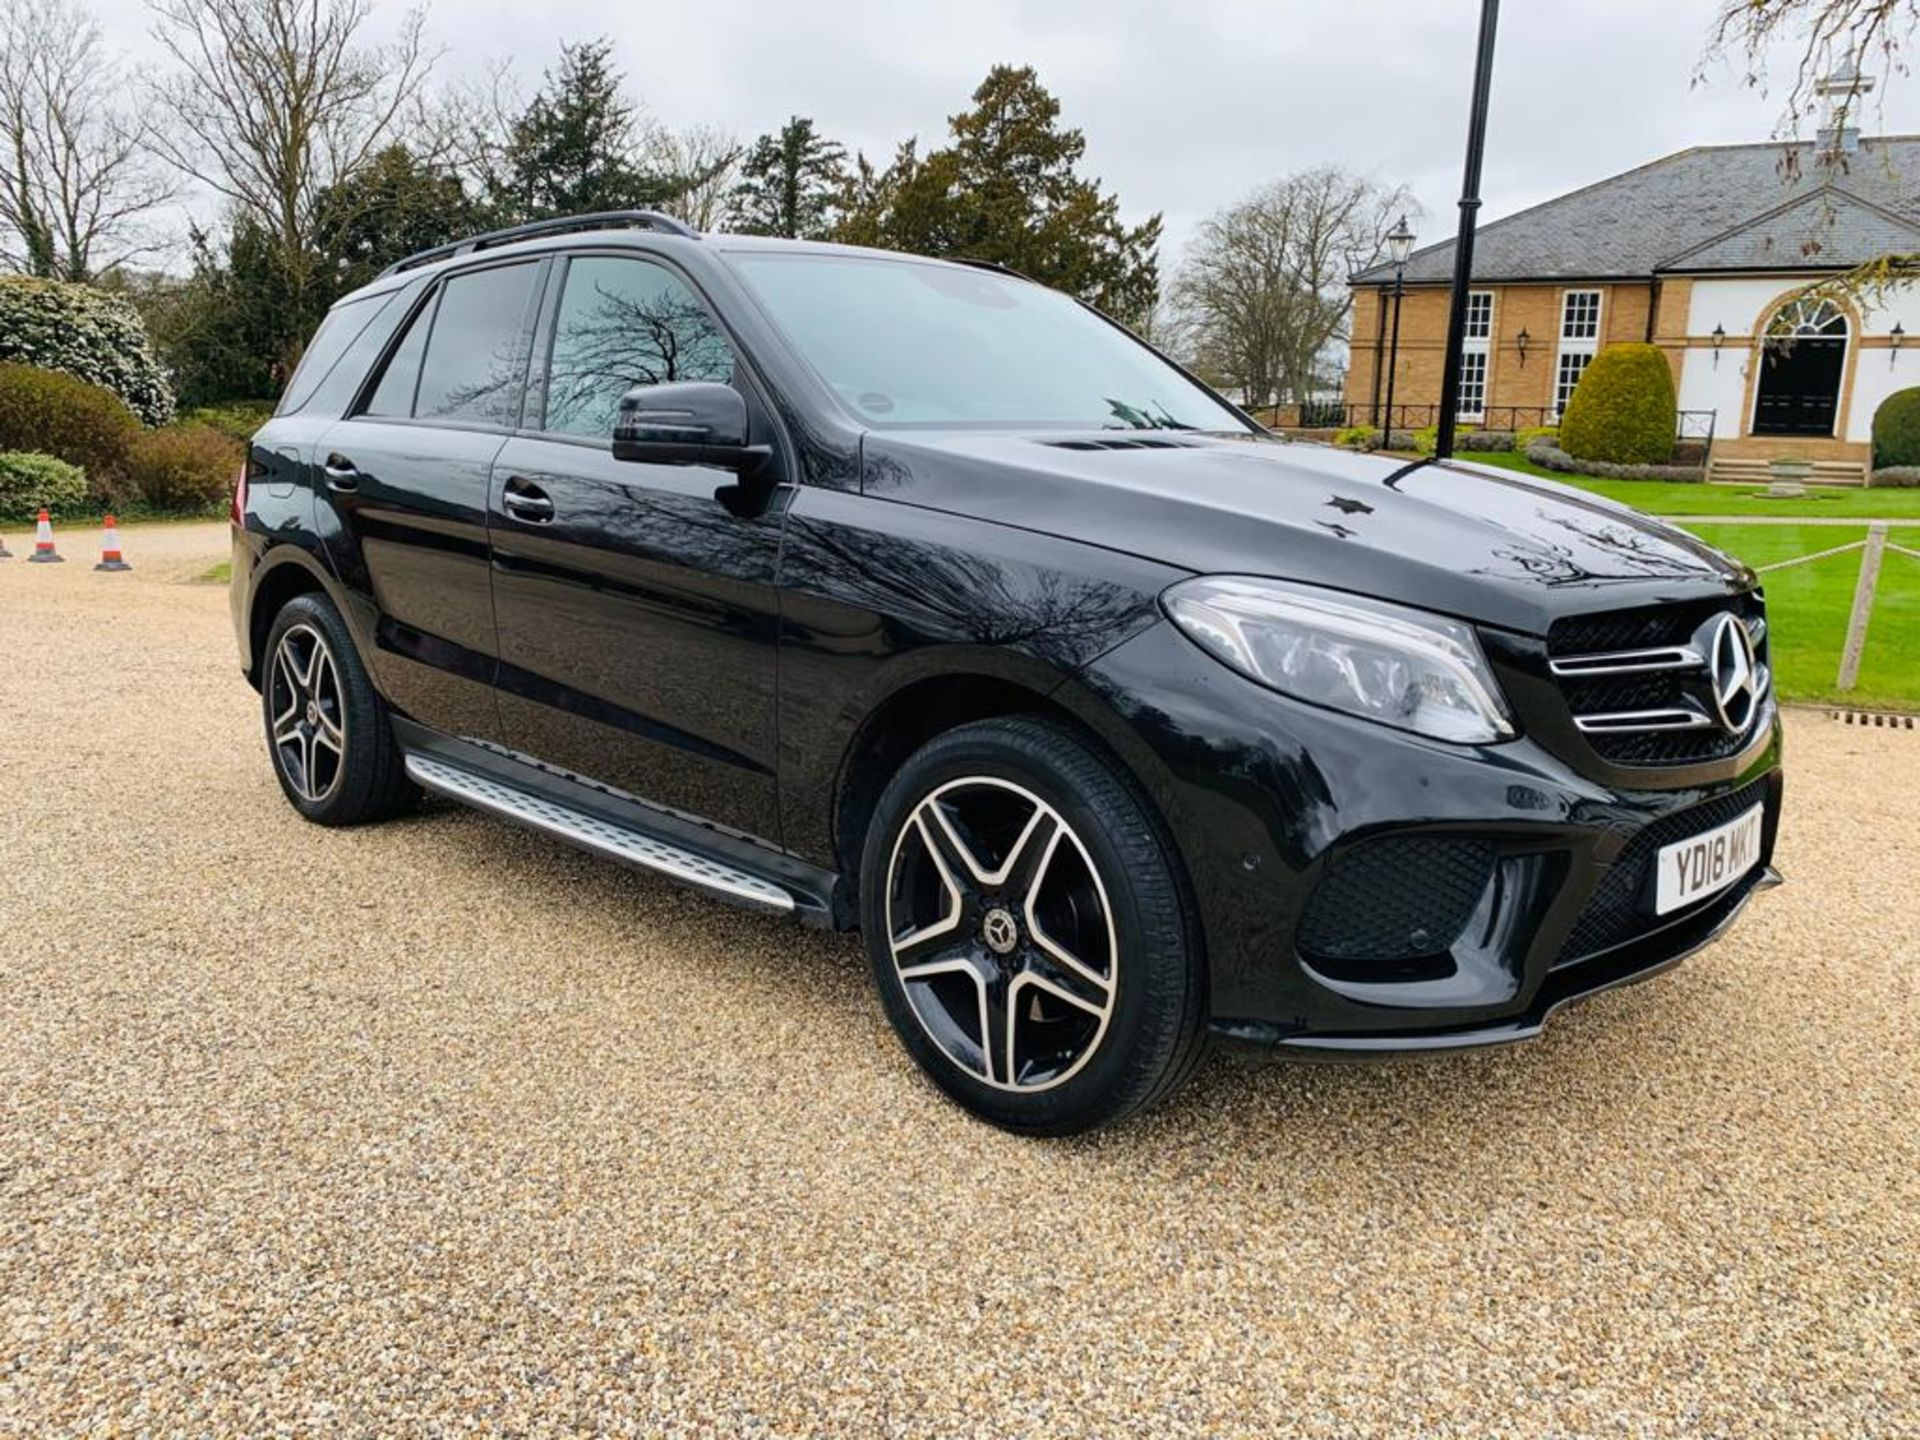 (RESERVE MET) Mercedes GLE 250d 4Matic AMG Night Edition 9G Tronic - 2018 18 Reg - Only 33K Miles - - Image 2 of 36